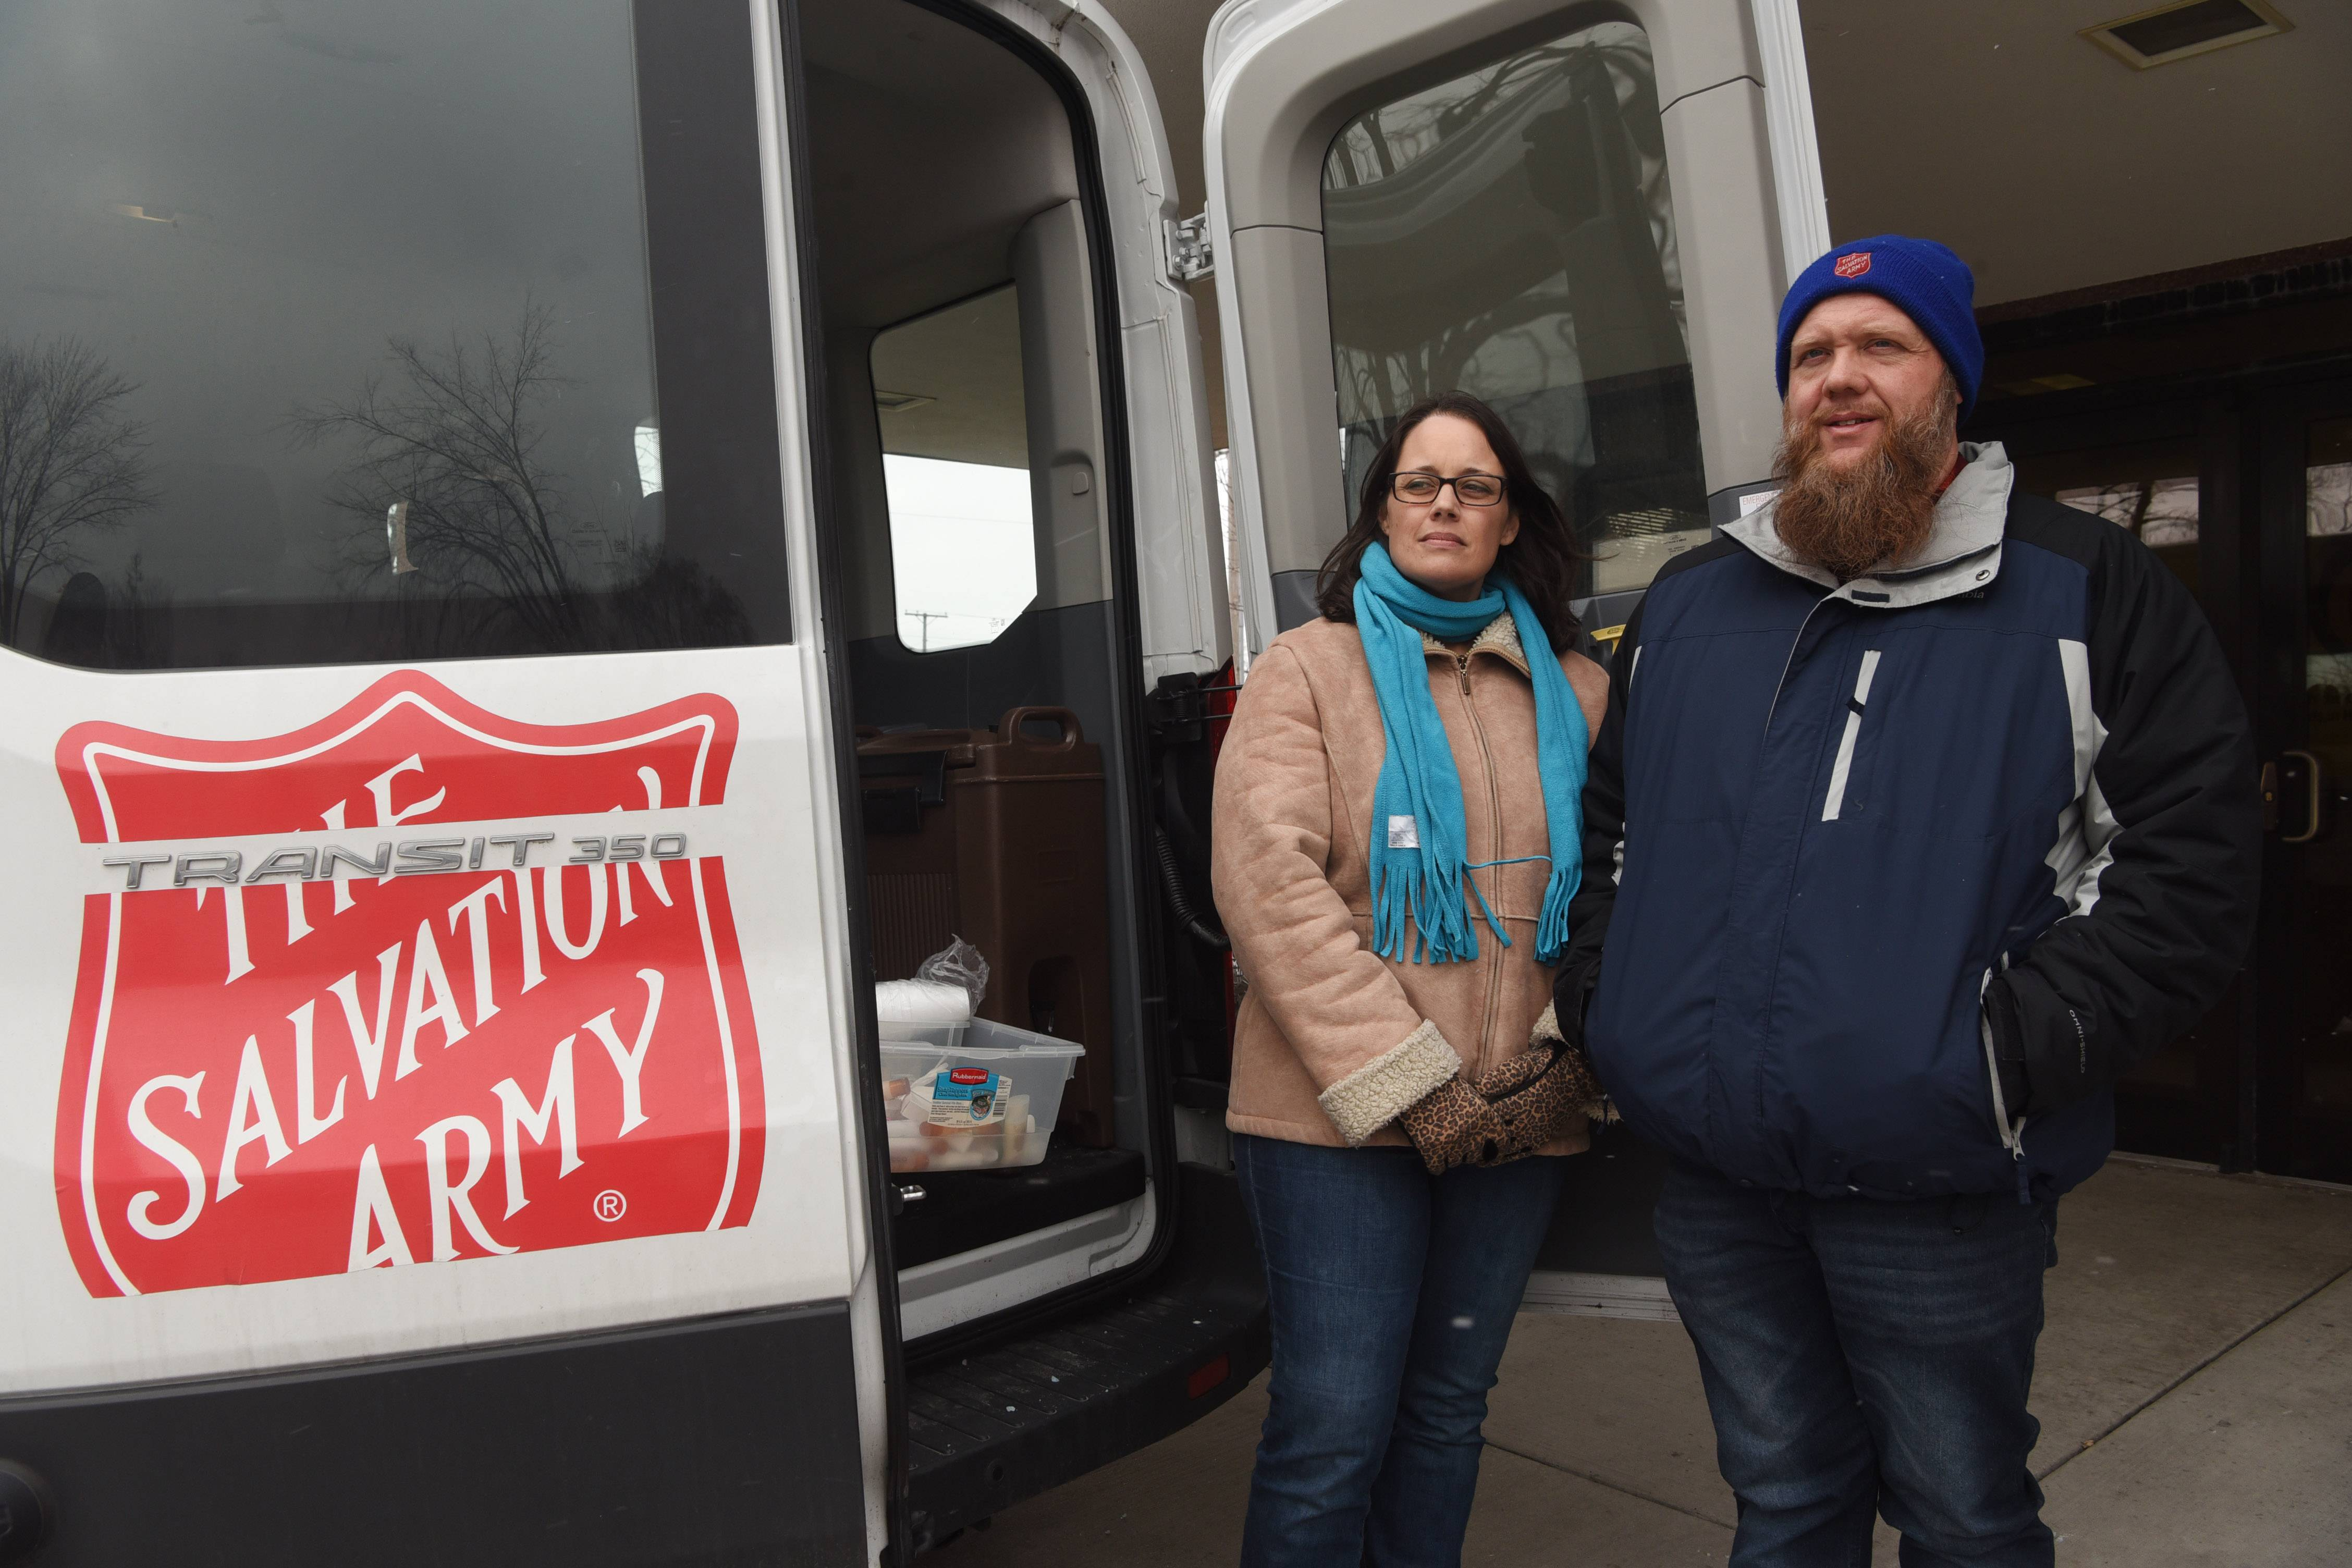 Every Tuesday and Friday, Bill and Debbi Middendorp load a Salvation Army van in Des Plaines with sandwiches, snacks, water and hygiene products and drive around the suburbs to help the homeless.